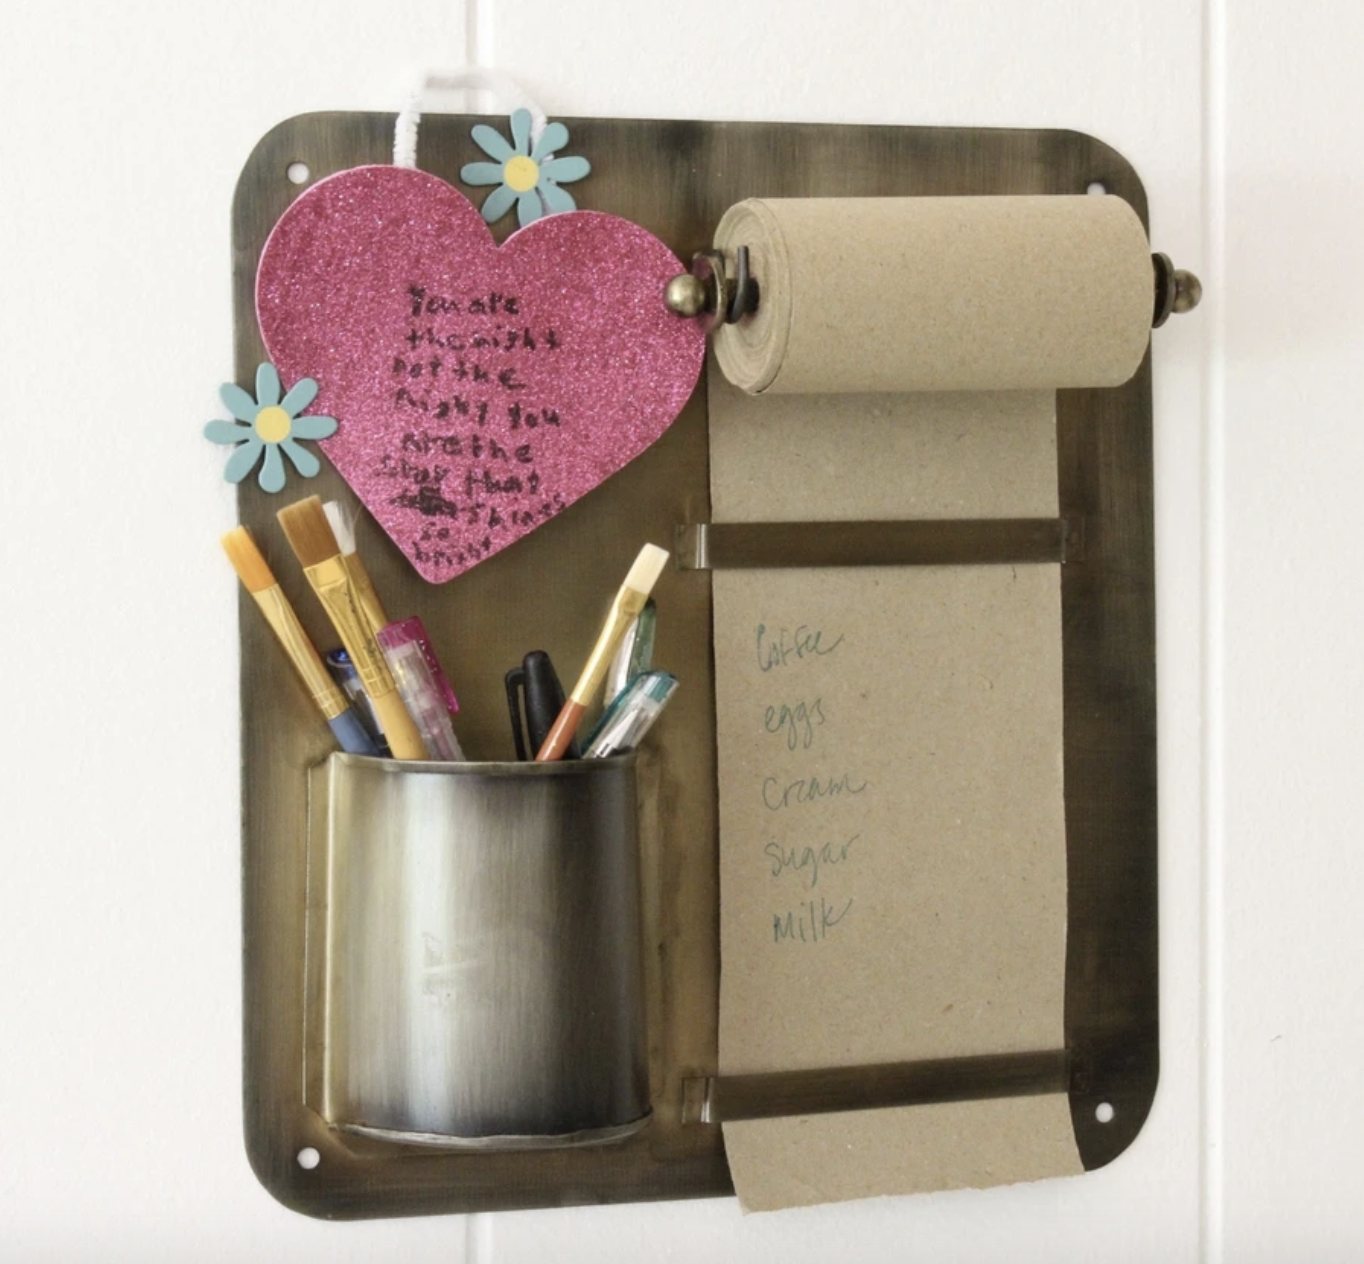 the aged brass note roll and organizer mounted on a wall